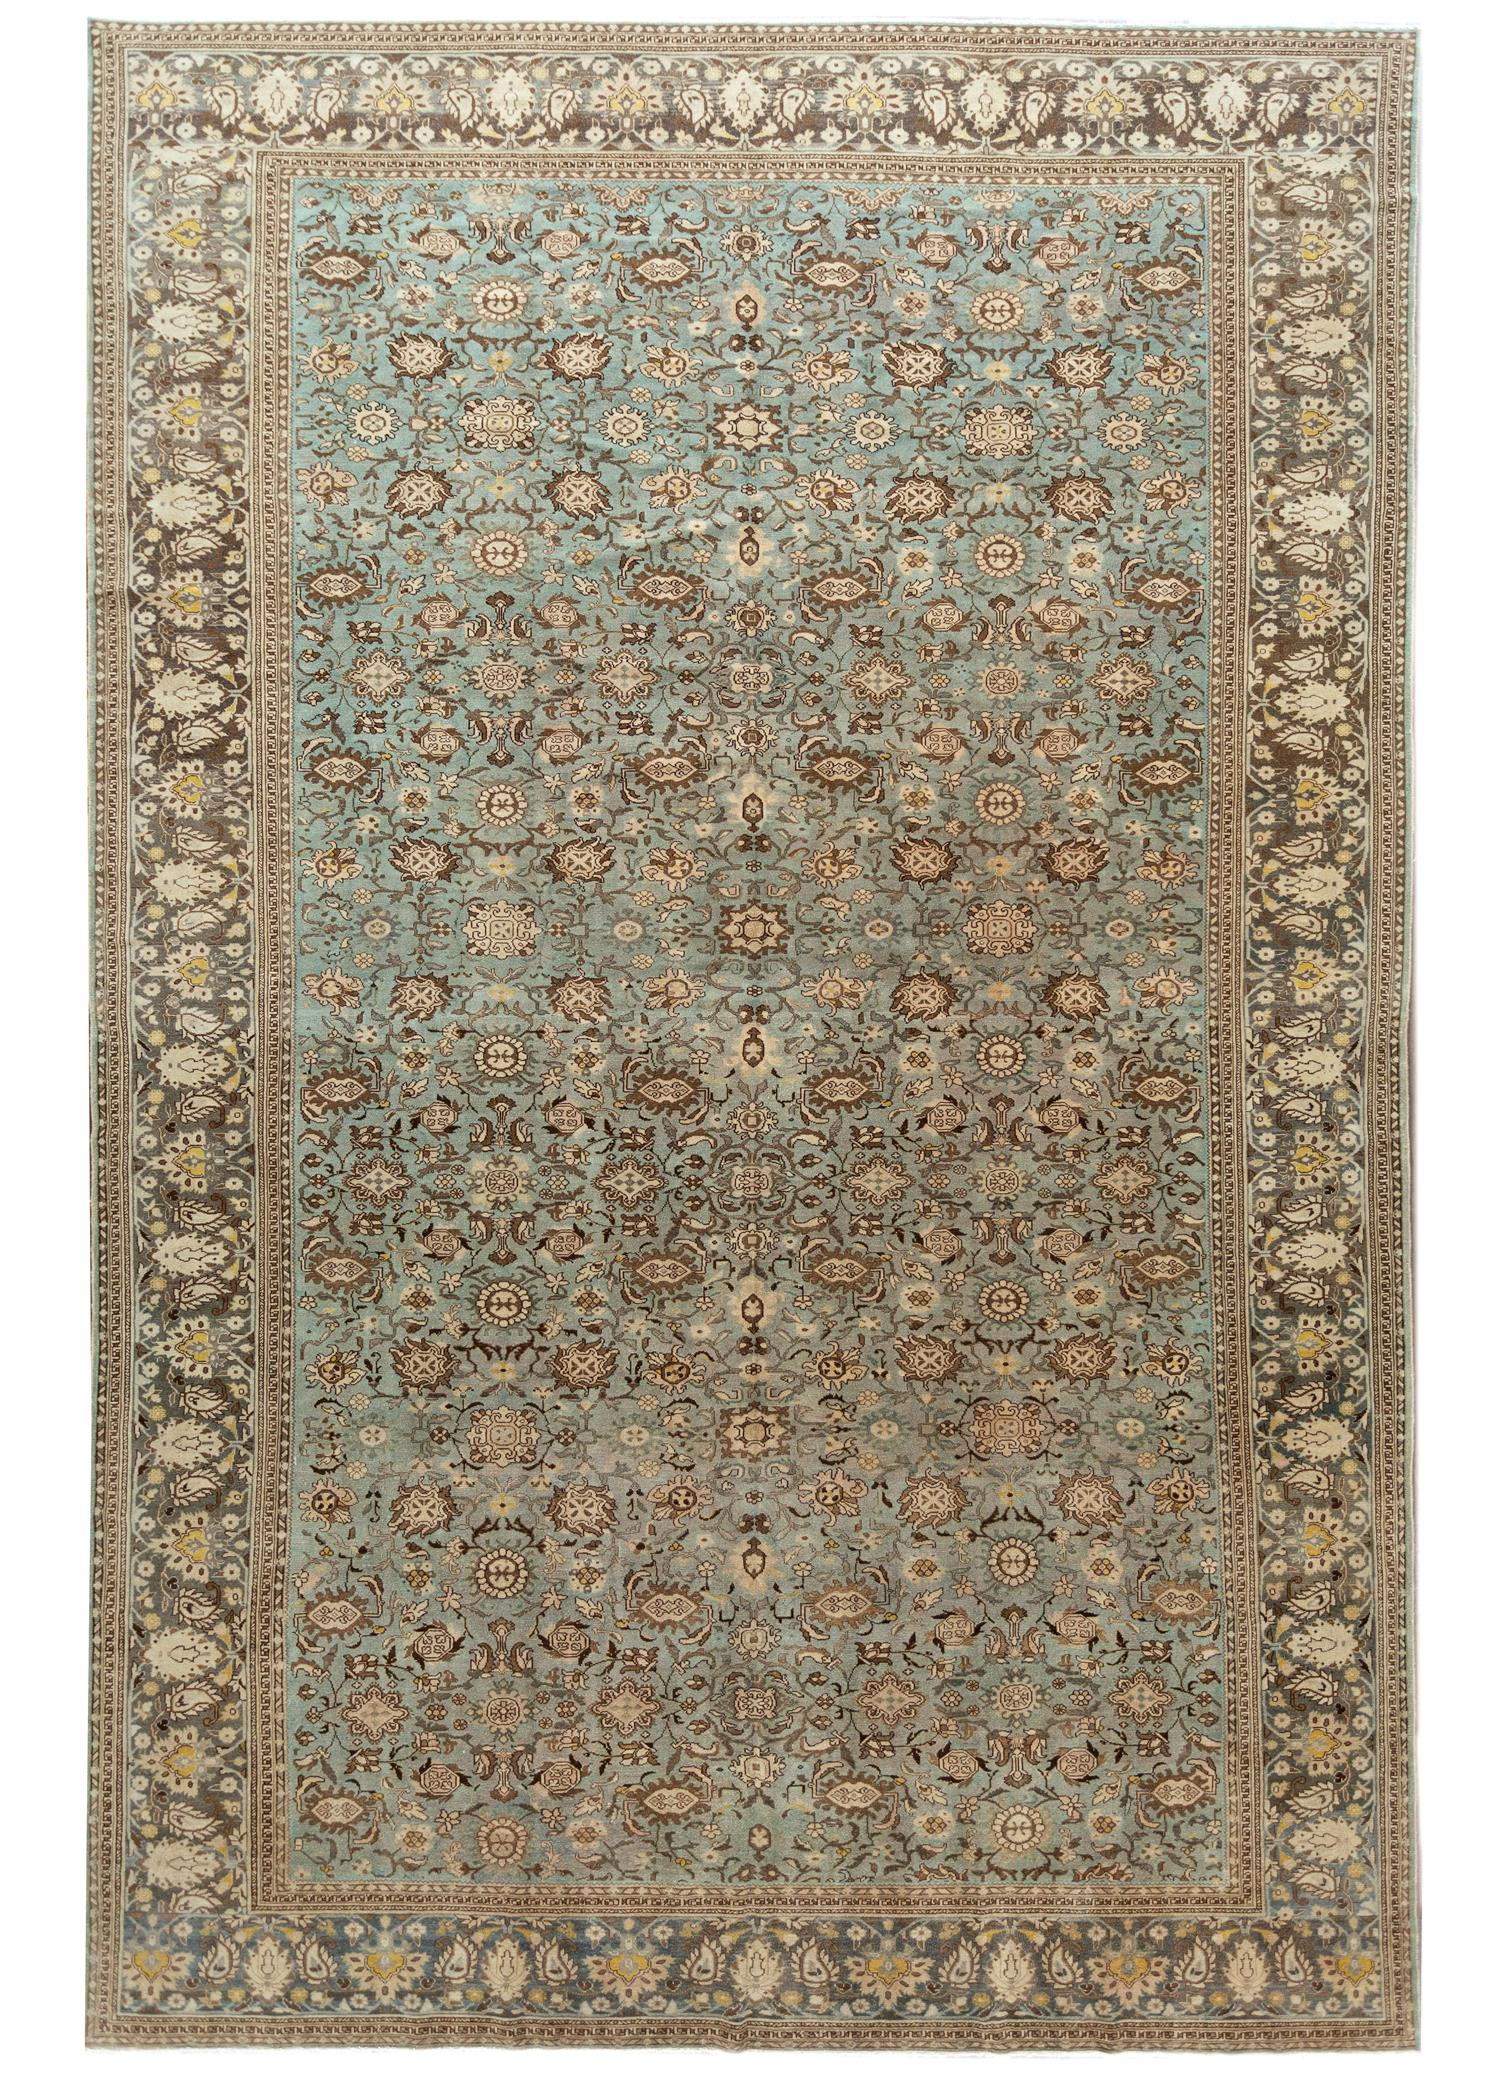 Antique Malayer Rug, #10235250, 12' x 18'